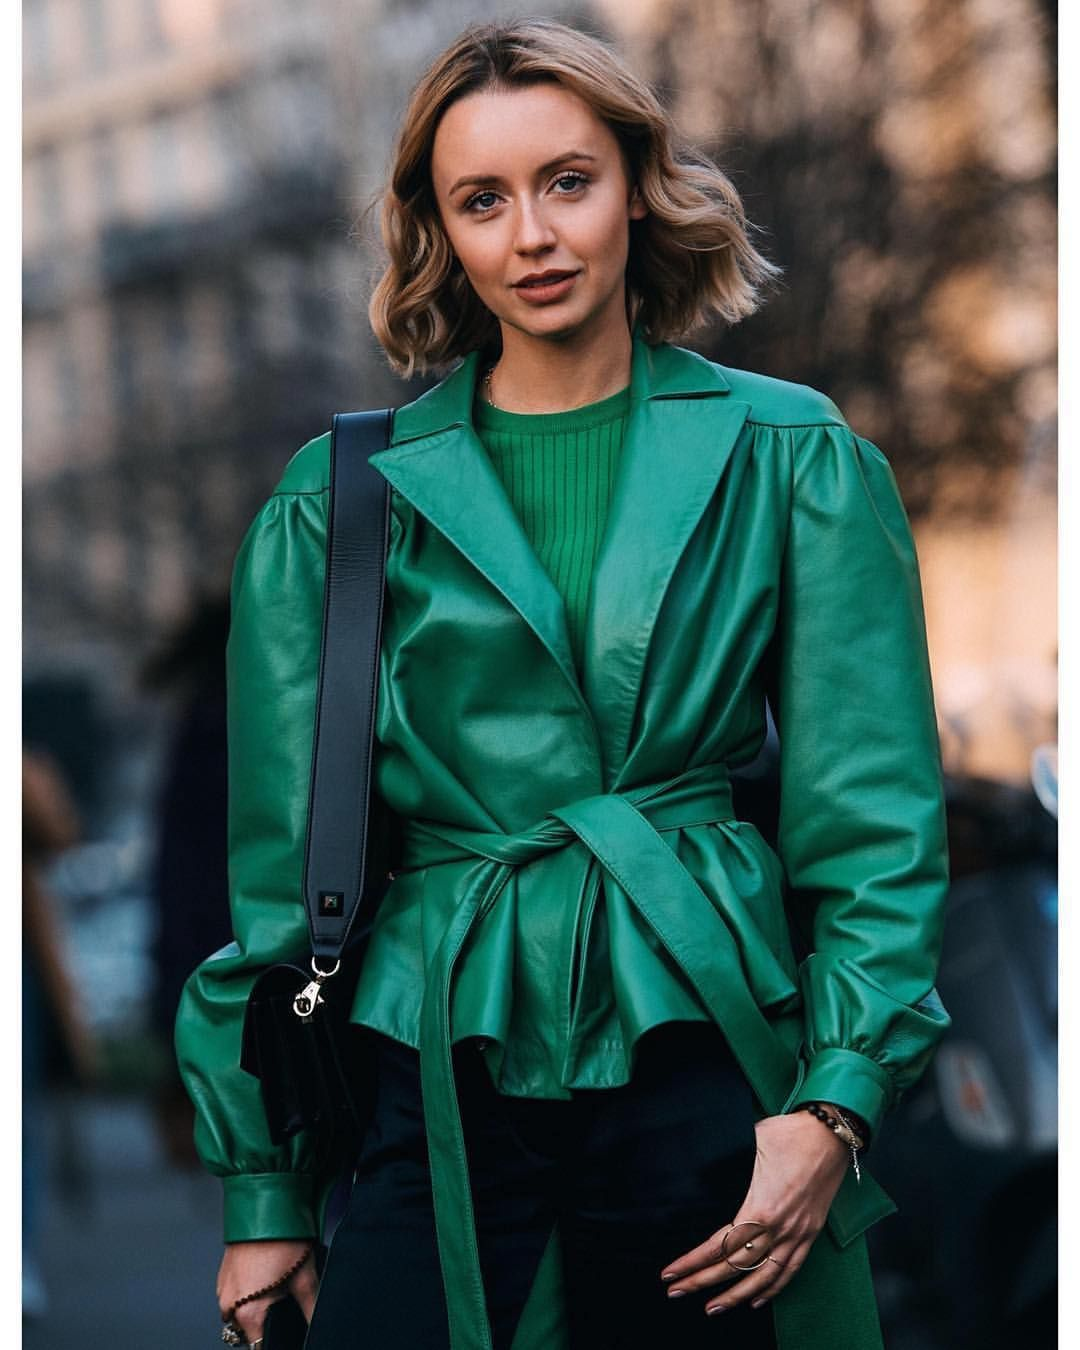 Best 💚 natalyosmann wearing green leather jacket Nebo on